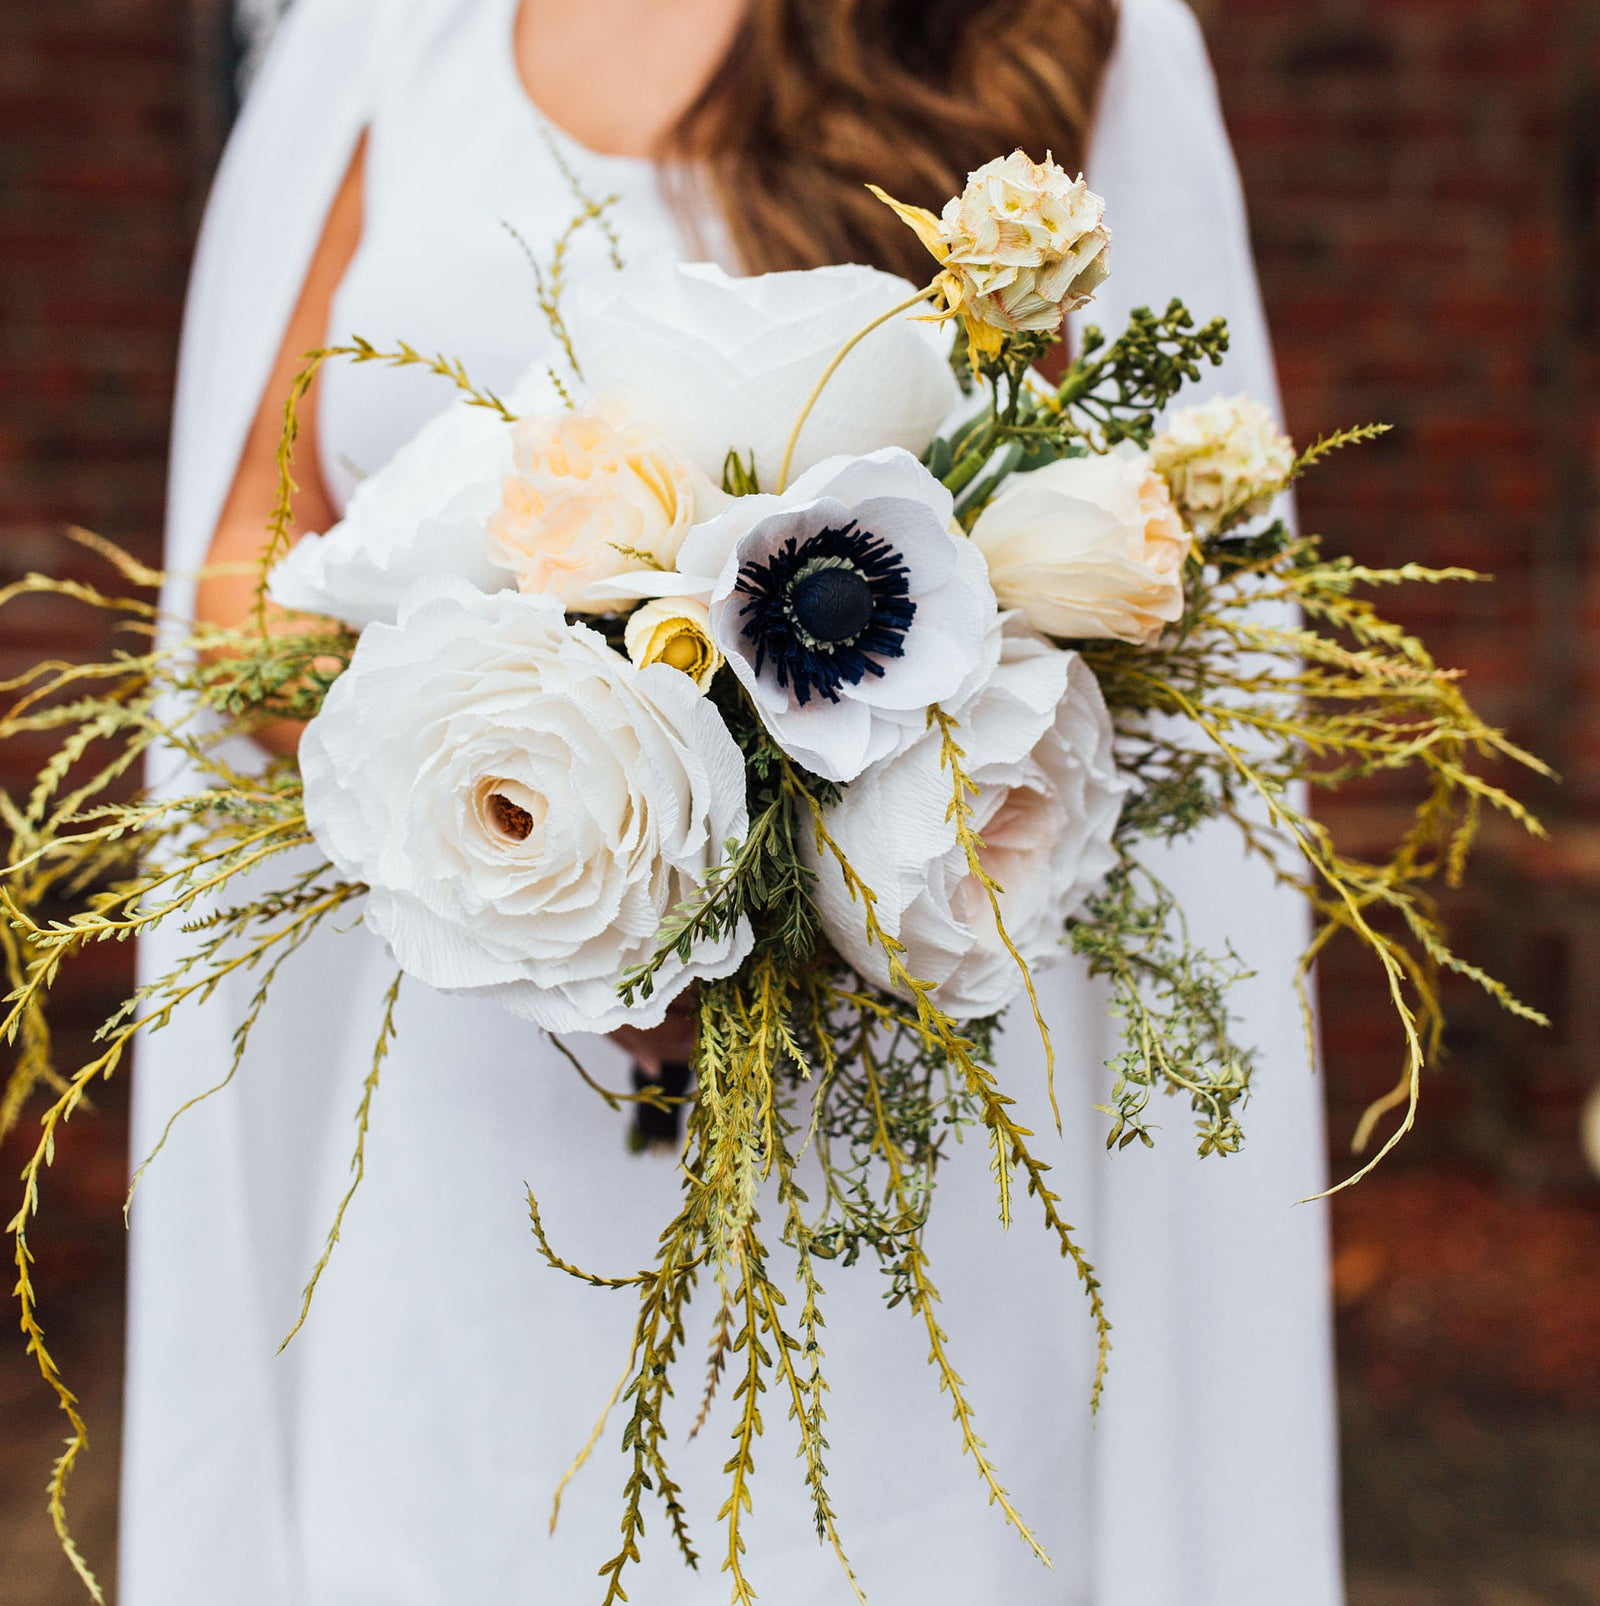 Crepe-paper flowers make a good alternative to a bouquet — and they'll last forever!